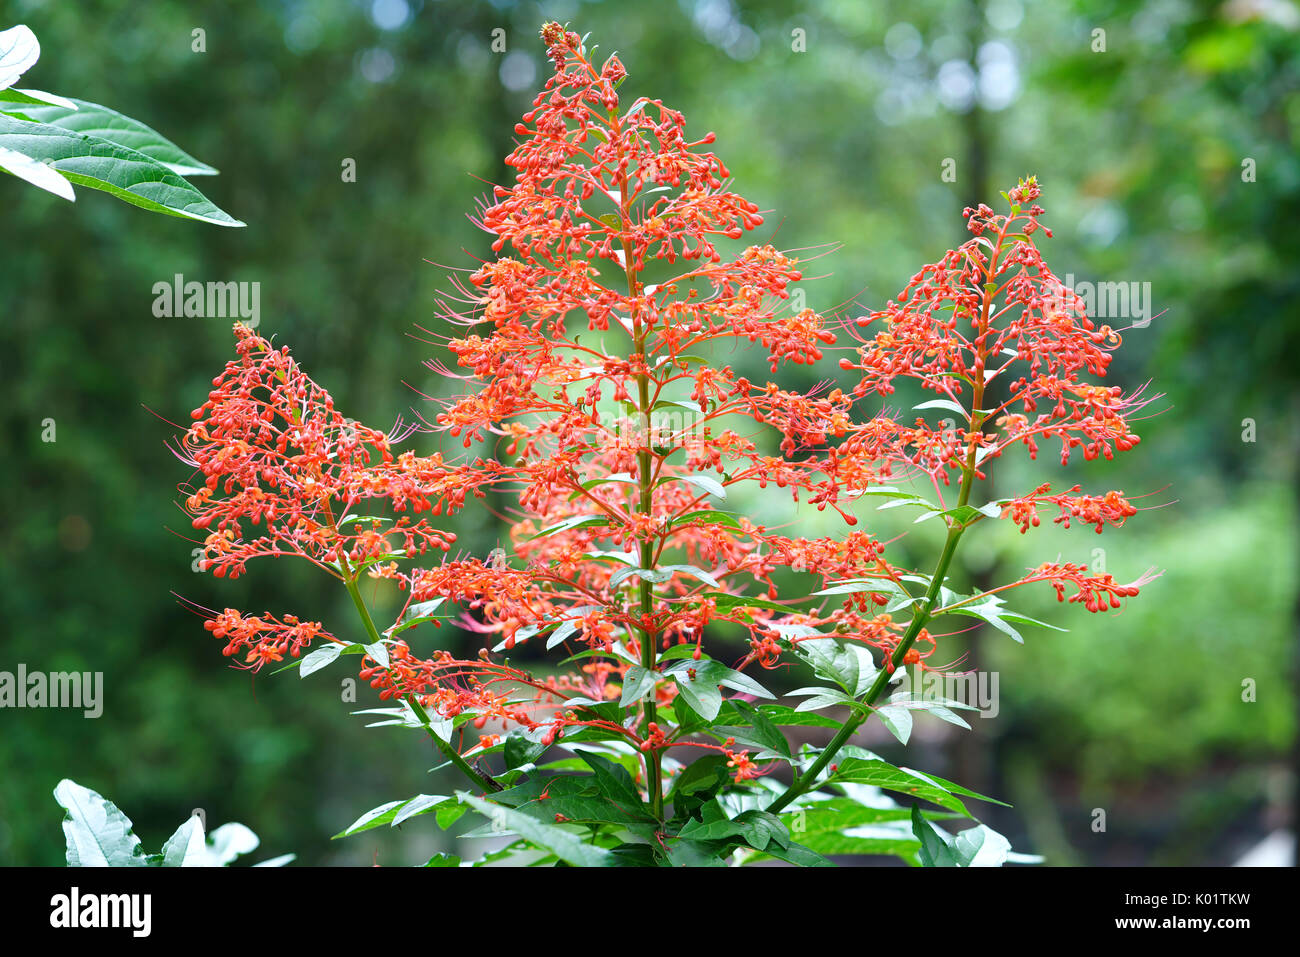 Clerodendrum paniculatum flowers blossoming in the garden, this is also a medicine to treat human eyes and menstruation. - Stock Image